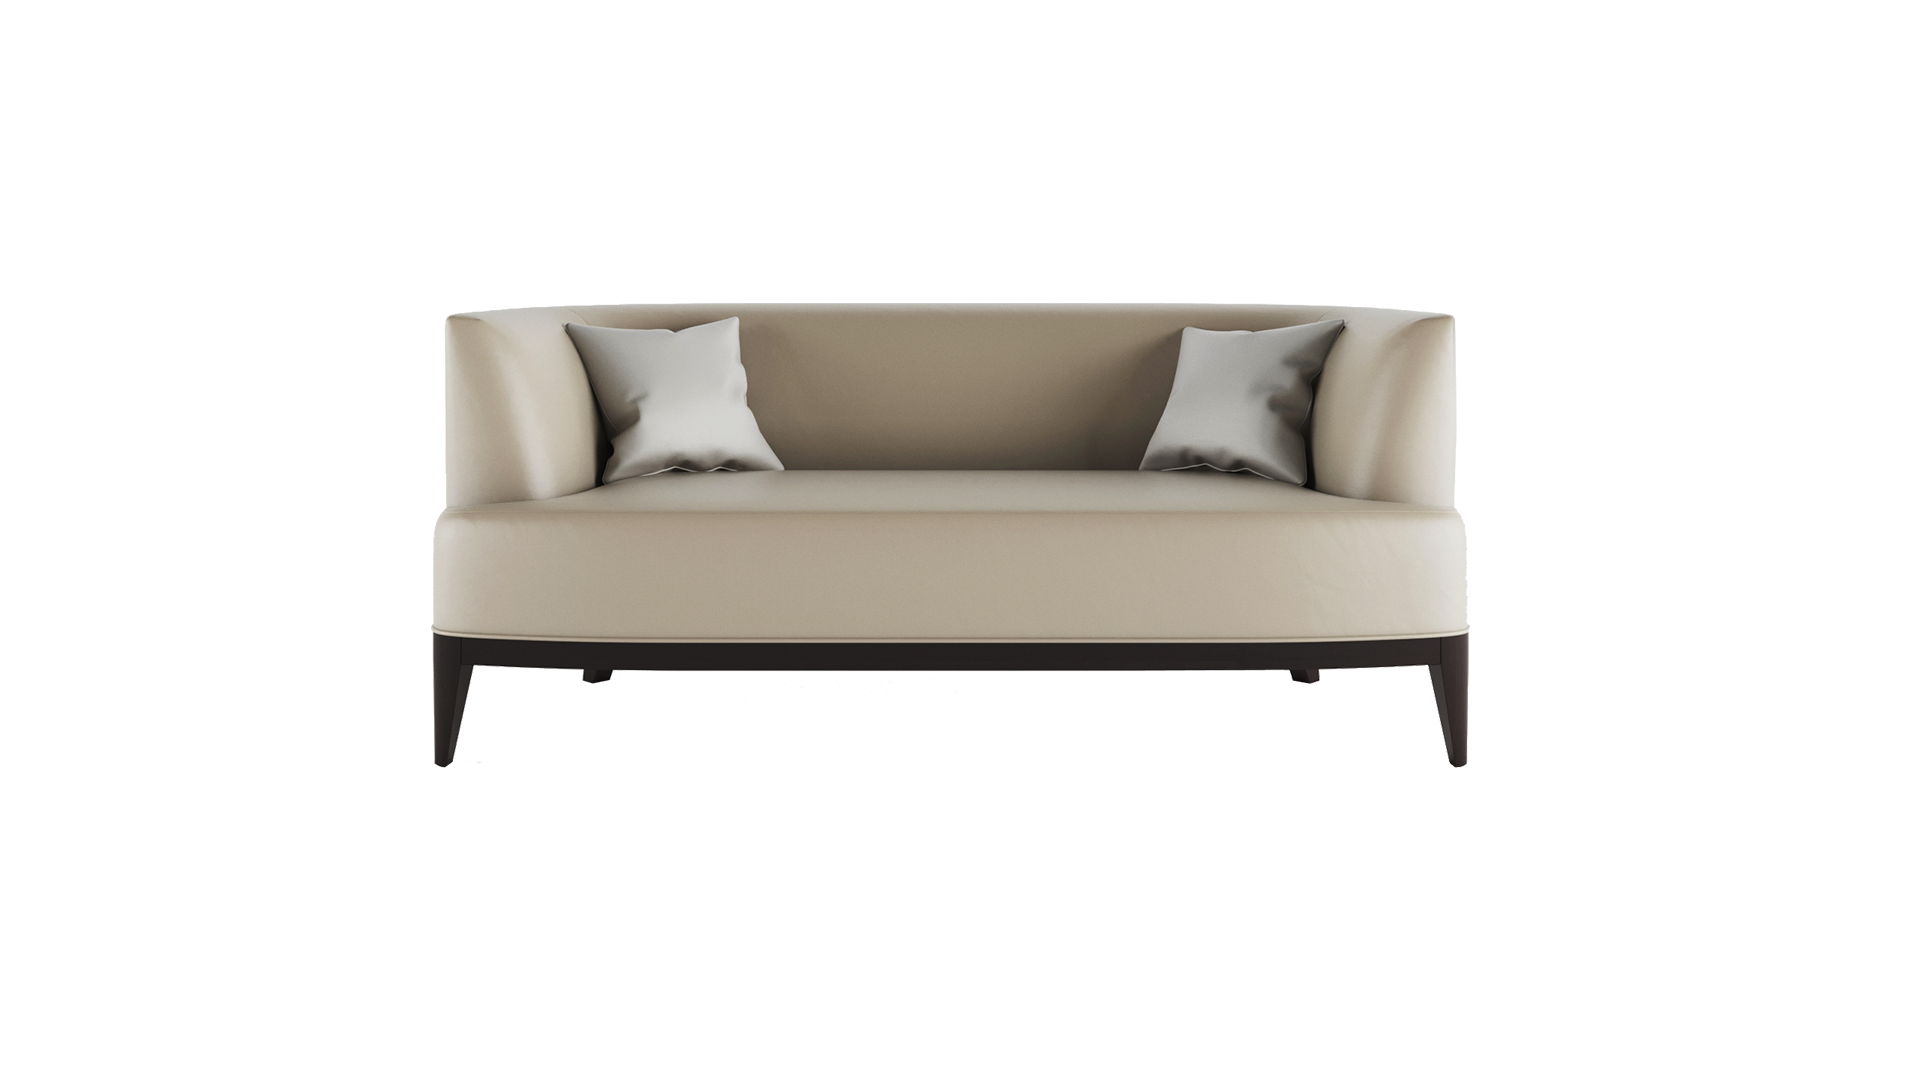 billy baldwin sofa cheap gross overscale leather. Black Bedroom Furniture Sets. Home Design Ideas